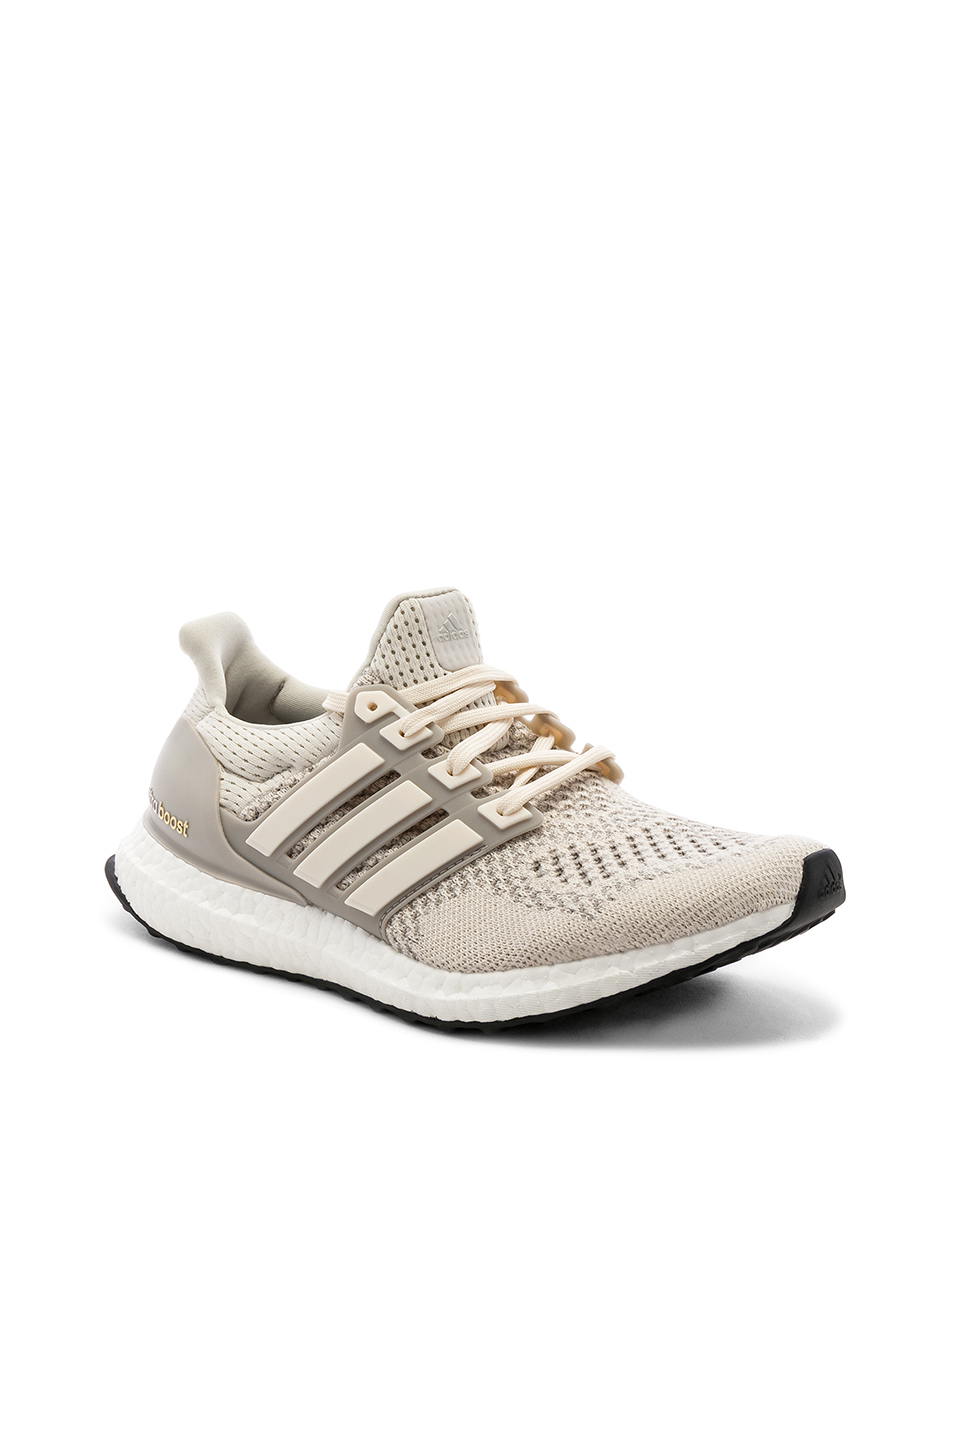 3e92ecdee76 Buy Original adidas Originals Ultraboost LTD at Indonesia